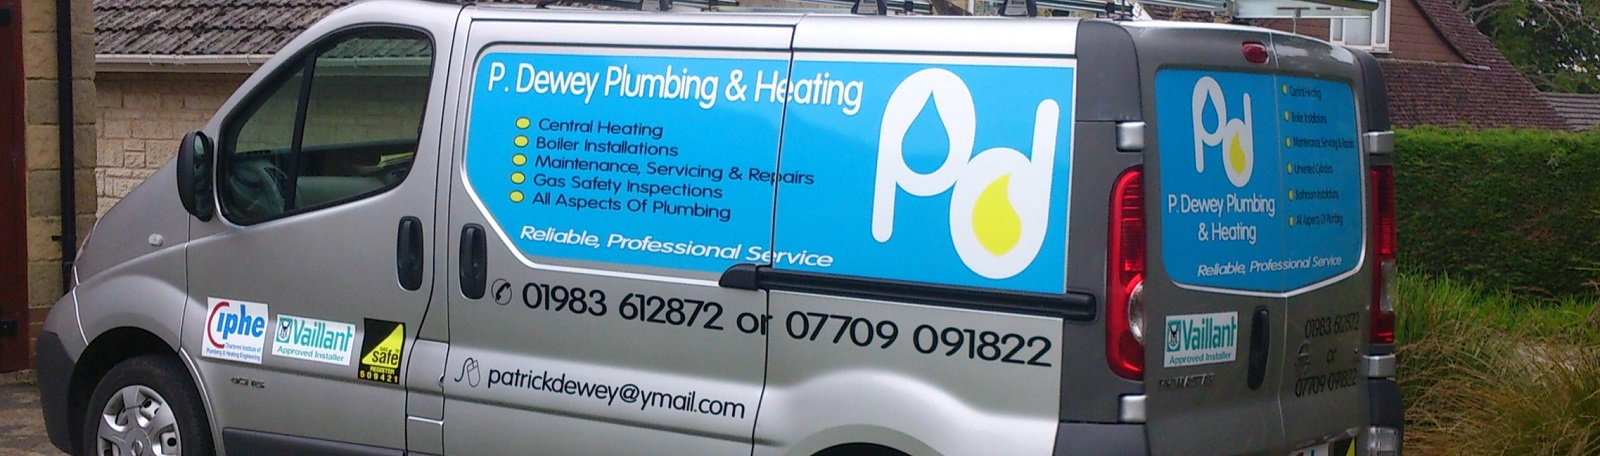 P Dewey Plumbing and Heating